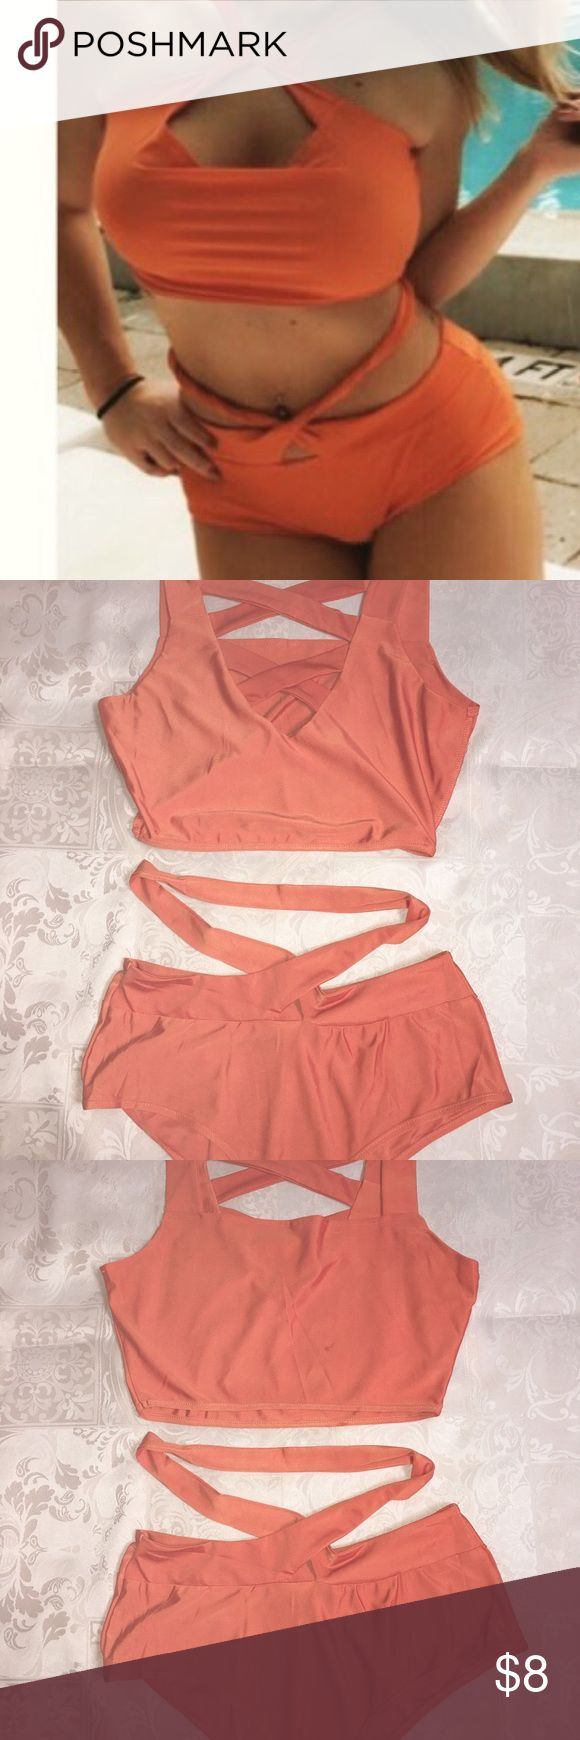 Orange bikini monokini size large Beautiful orange bikini. Can be worn several ways. Size large. Worn one time. Perfect for summer and vacations! Swim Bikinis